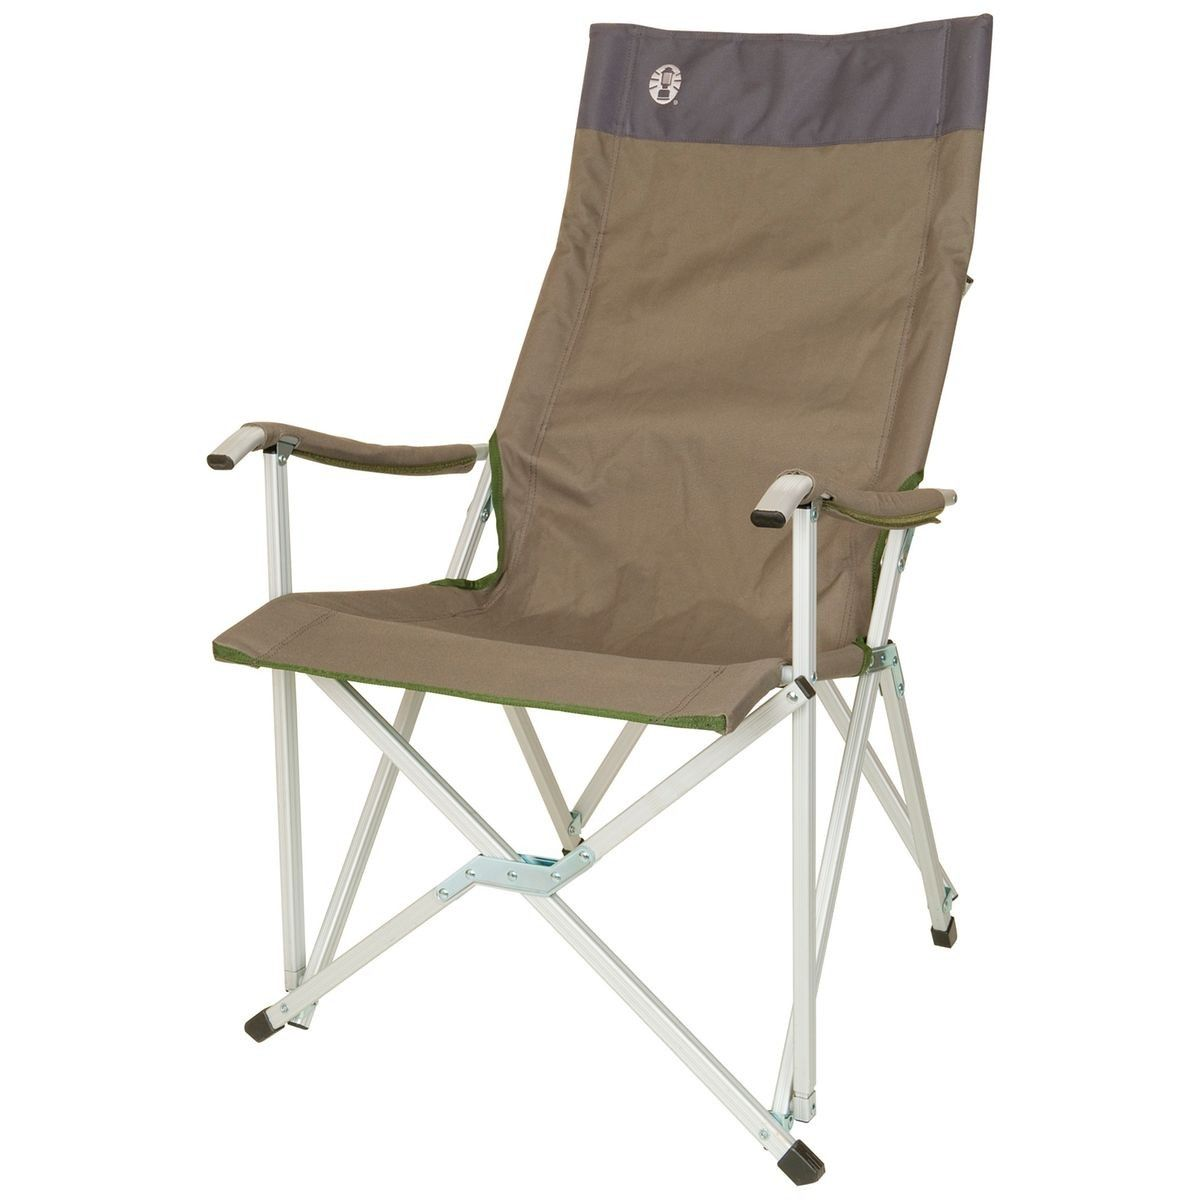 Chaise De Camping Sling Chair Taille Taille Unique Chaise De Camping Meubles De Camping Chaise Exterieur